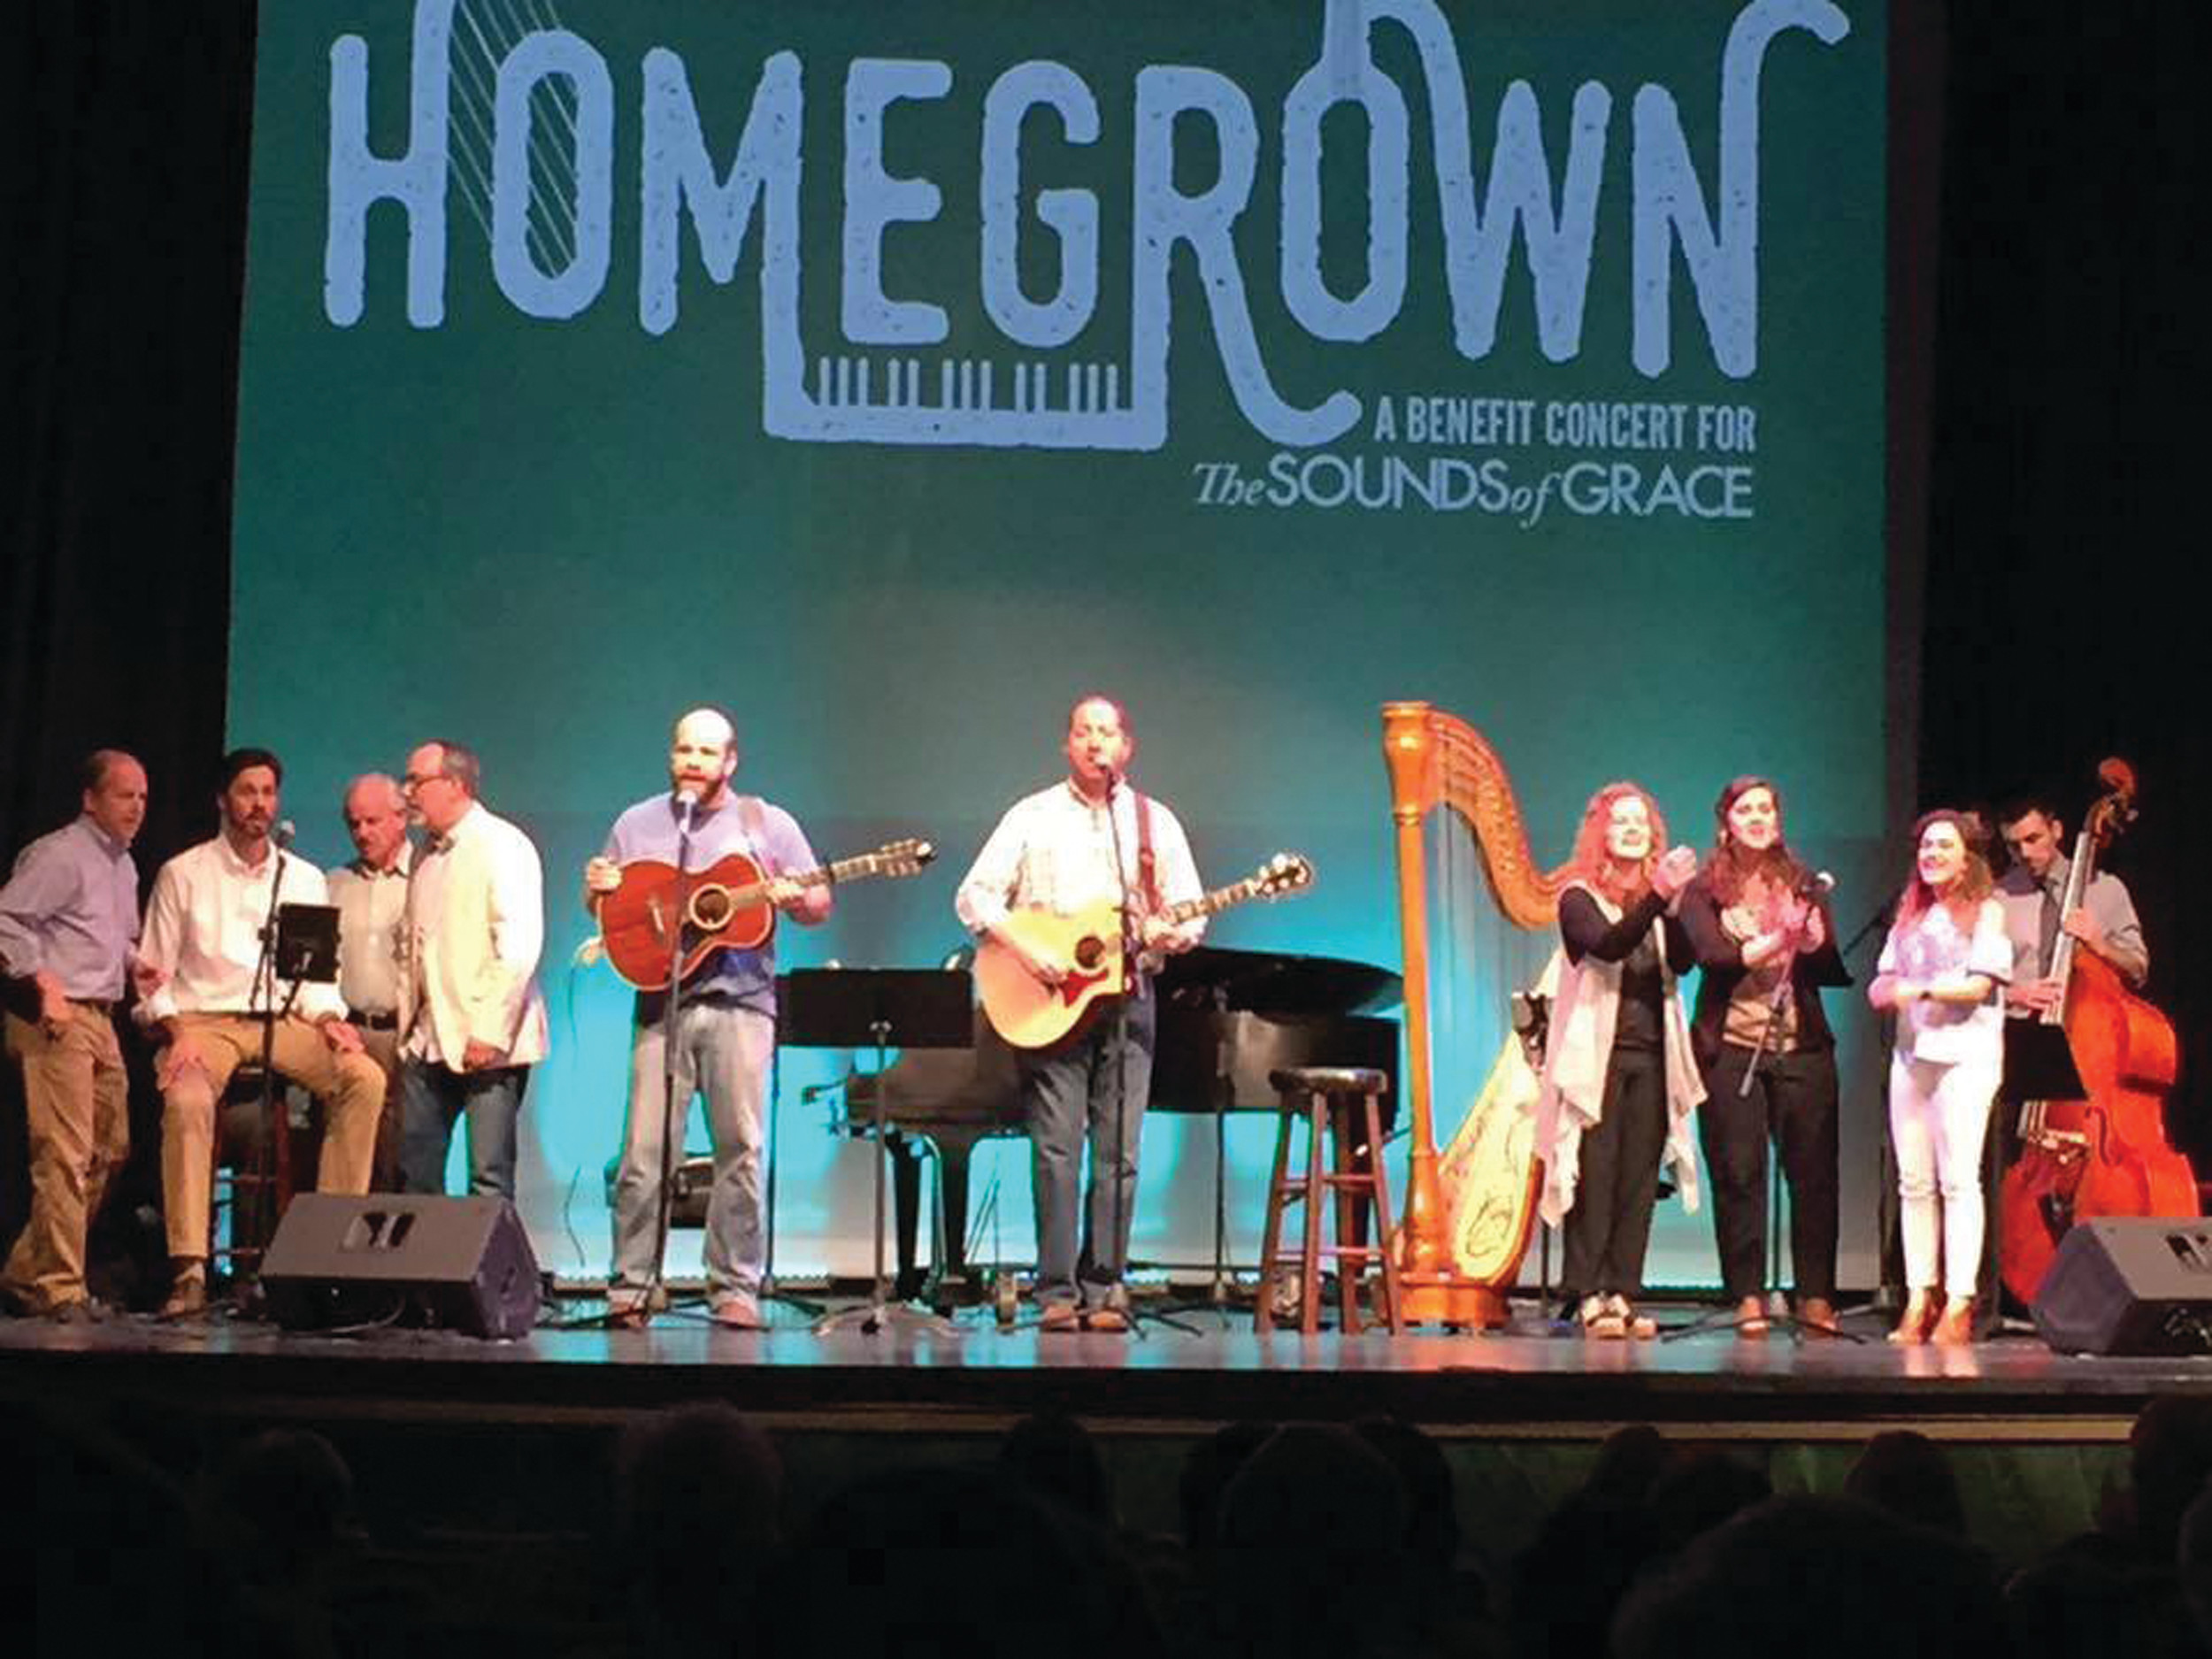 Performers take the stage for a previous Homegrown concert. This year's concert is slated for 6 p.m. on Nov. 2 at the City Centre.